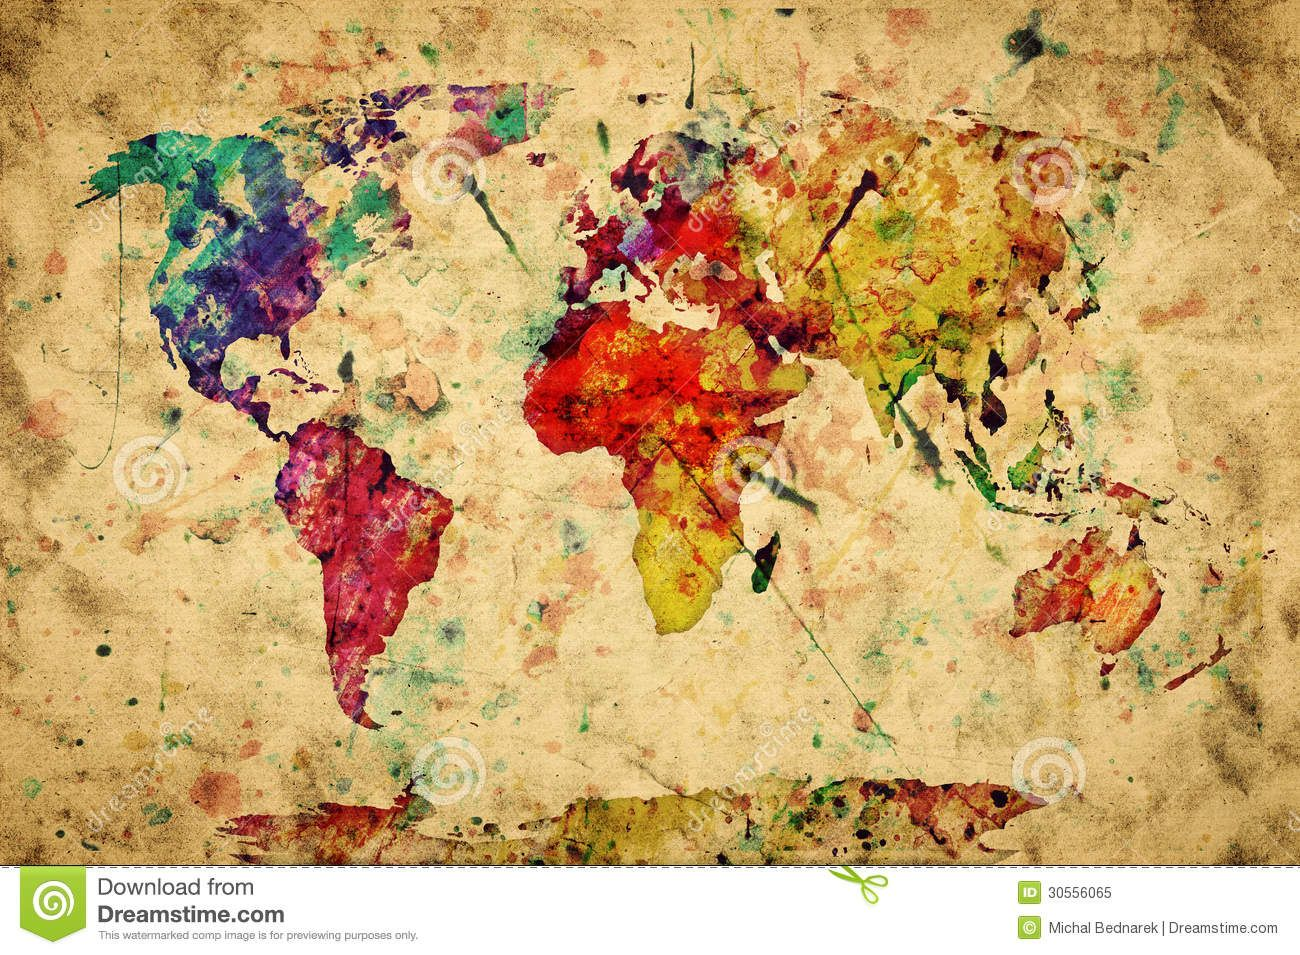 Vintage world map colorful paint download from over 66 million vintage world map colorful paint download from over 66 million high quality stock photos gumiabroncs Images